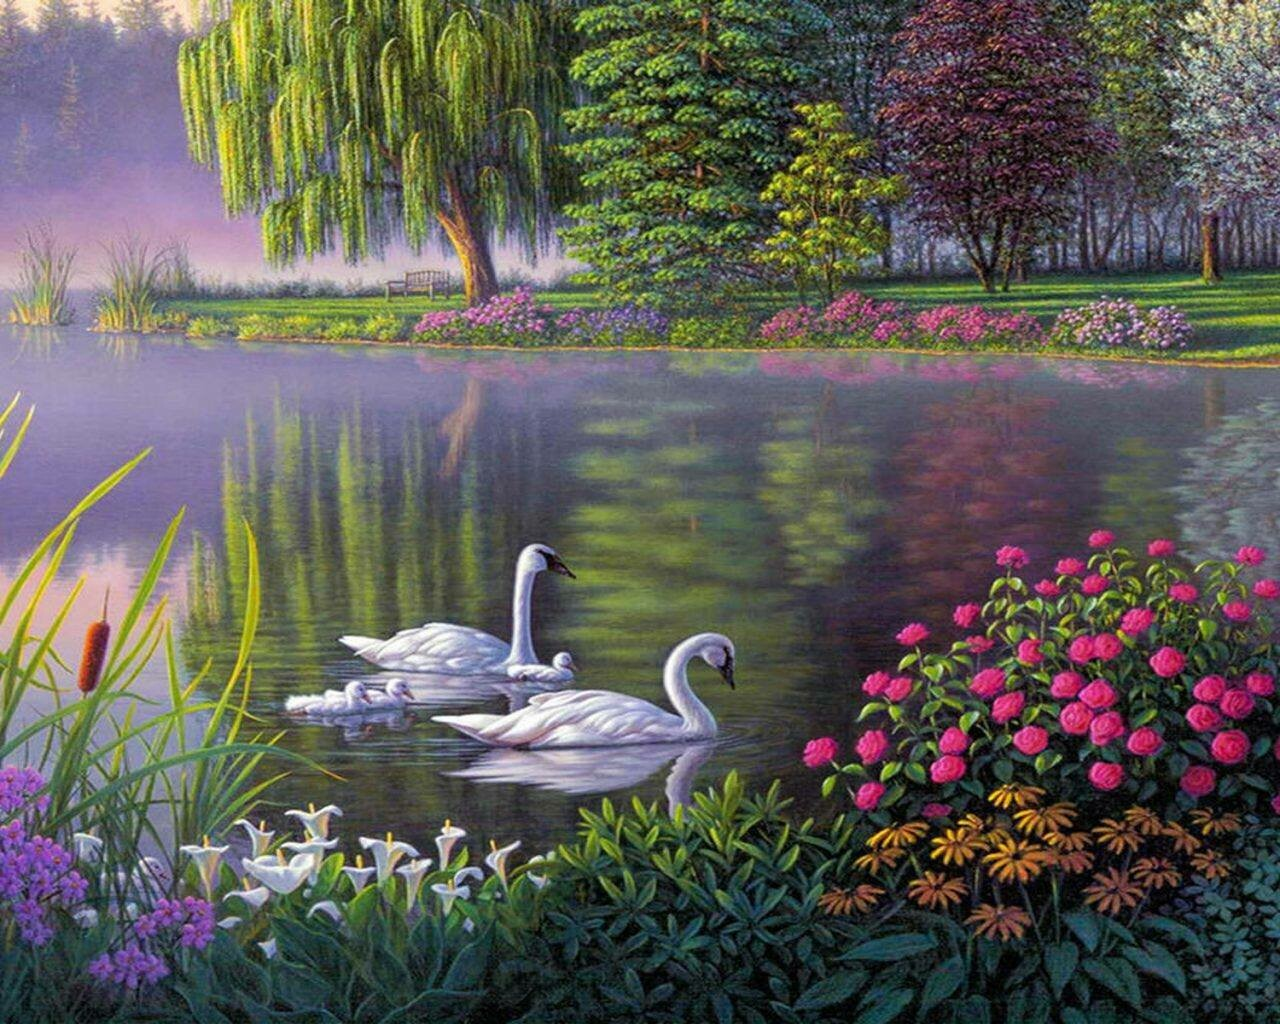 Scenery Artwork 11 - Full Drill Diamond Painting - Specially ordered for you. Delivery is approximately 4 - 6 weeks.